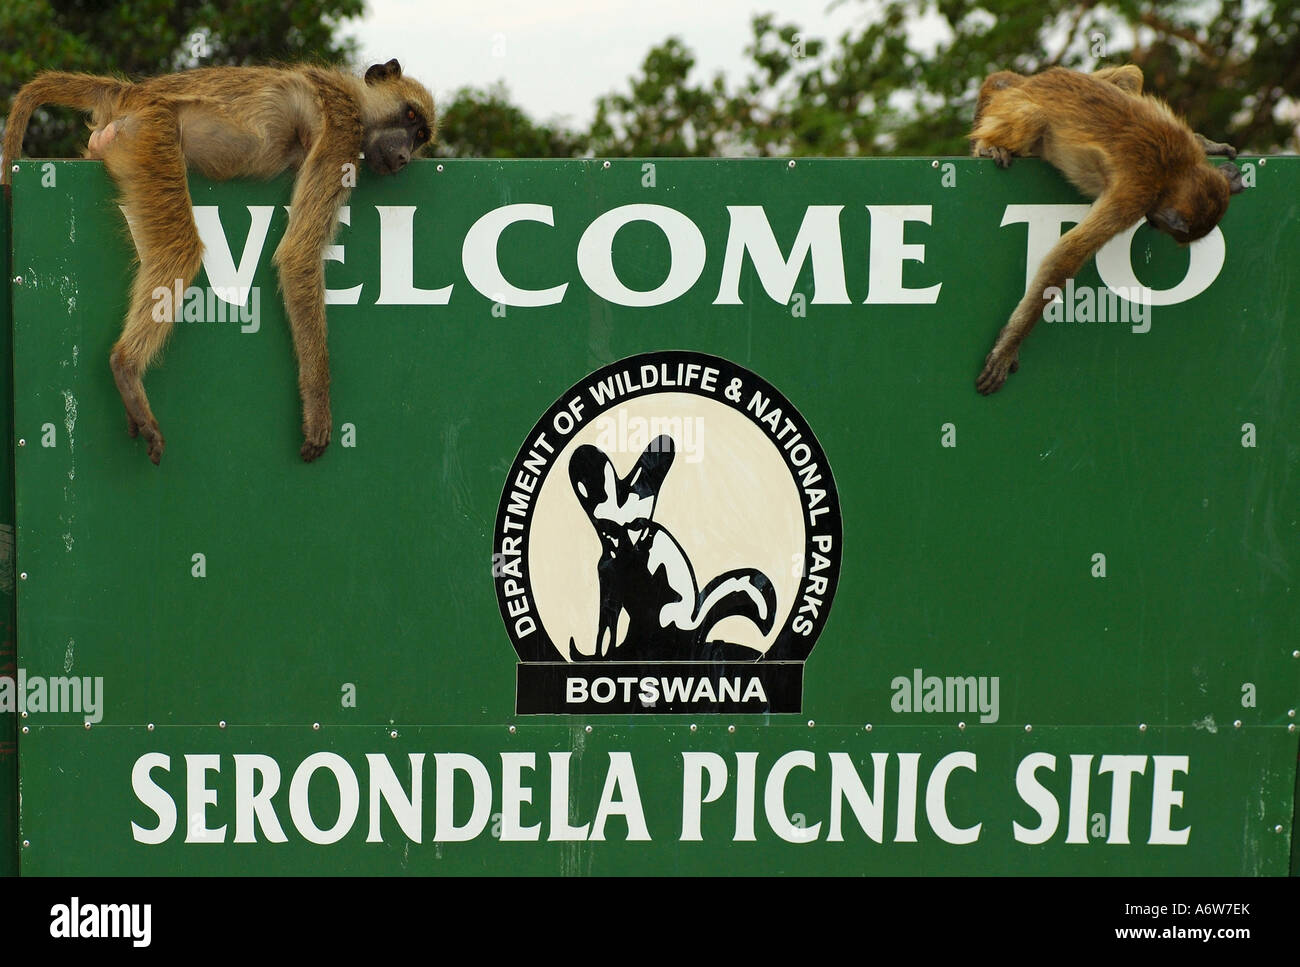 Welcome to Serondela Picknick Site, Chobe River, Botswana Stock Photo